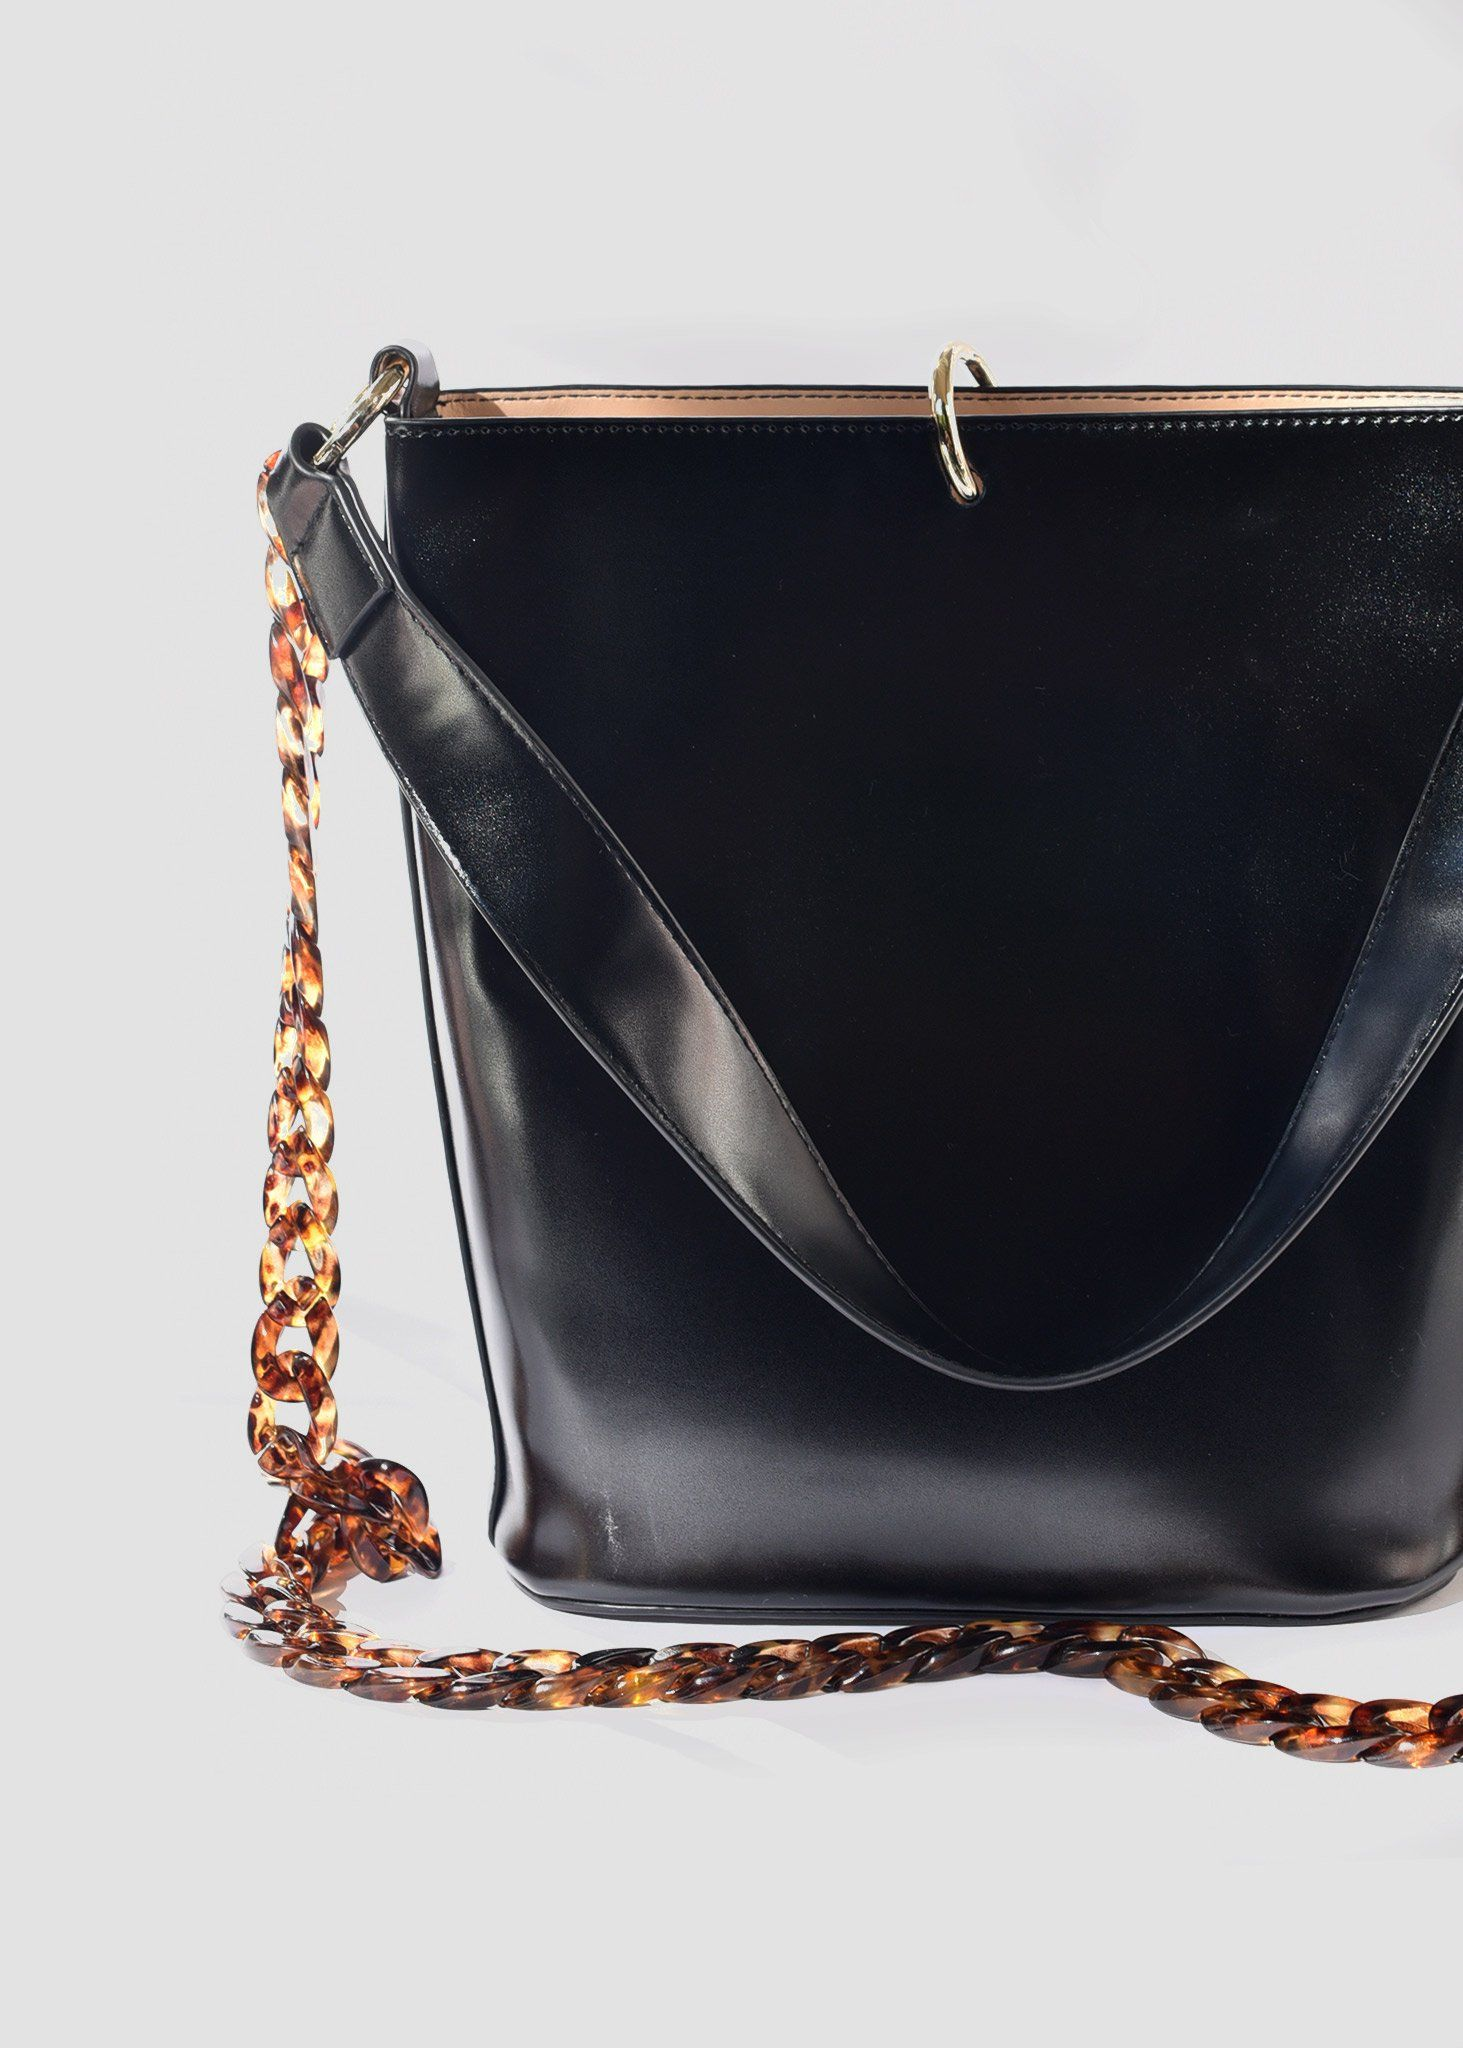 59b7bd978672 Bucket Tote Bag in black by Brie Leon at Dead Pretty. Acetate tortoiseshell  chain strap. Perfection!